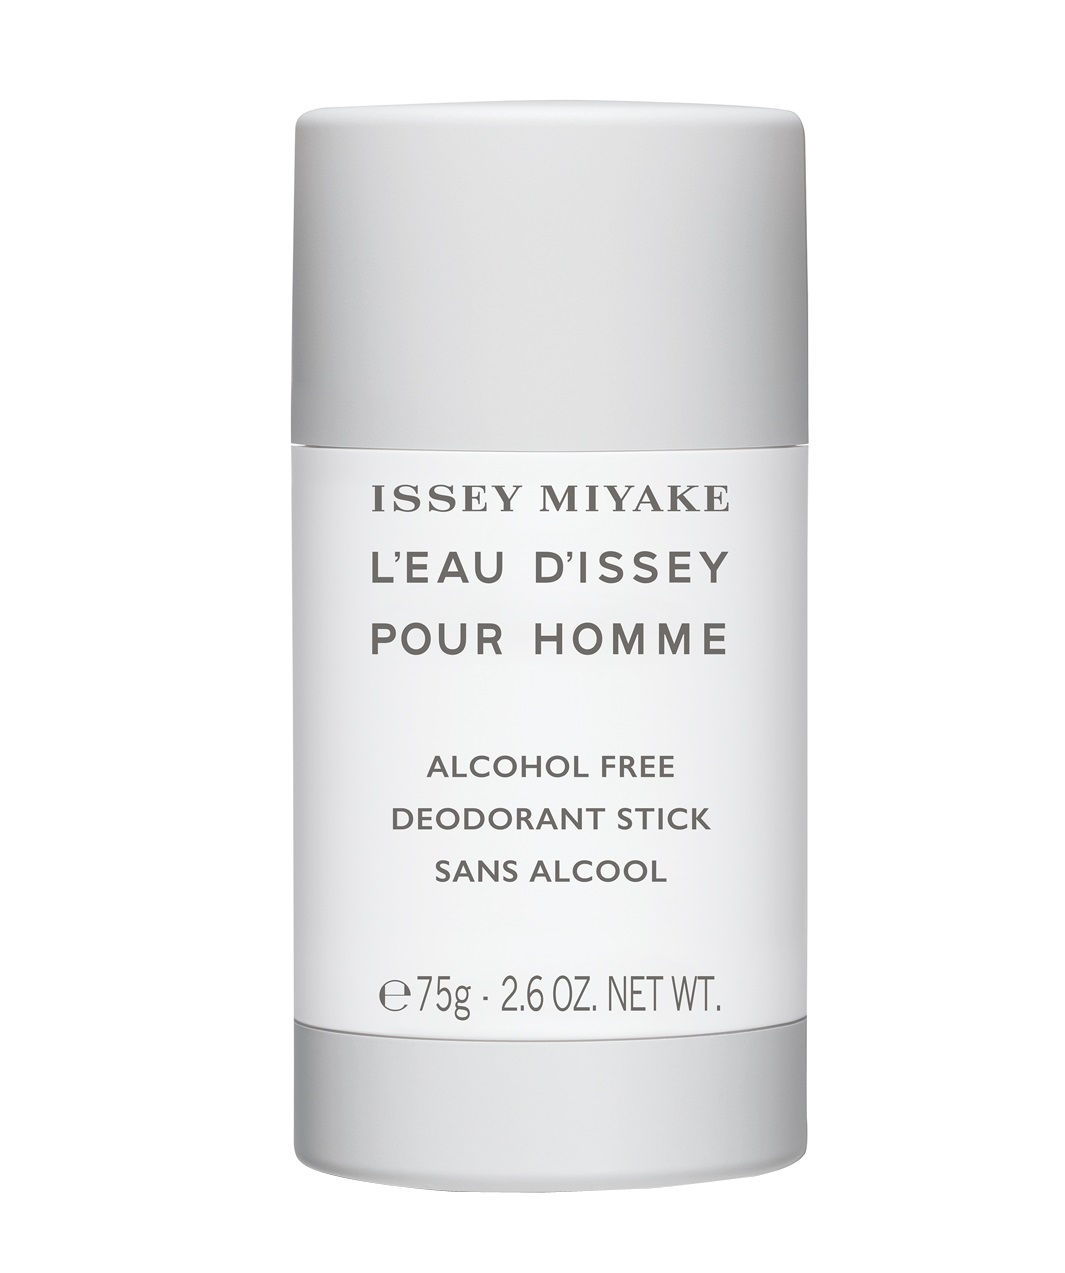 Issey Miyake L'Eau d'Issey Pour Homme Deo  Desodorante Barra sin alcohol para hombre